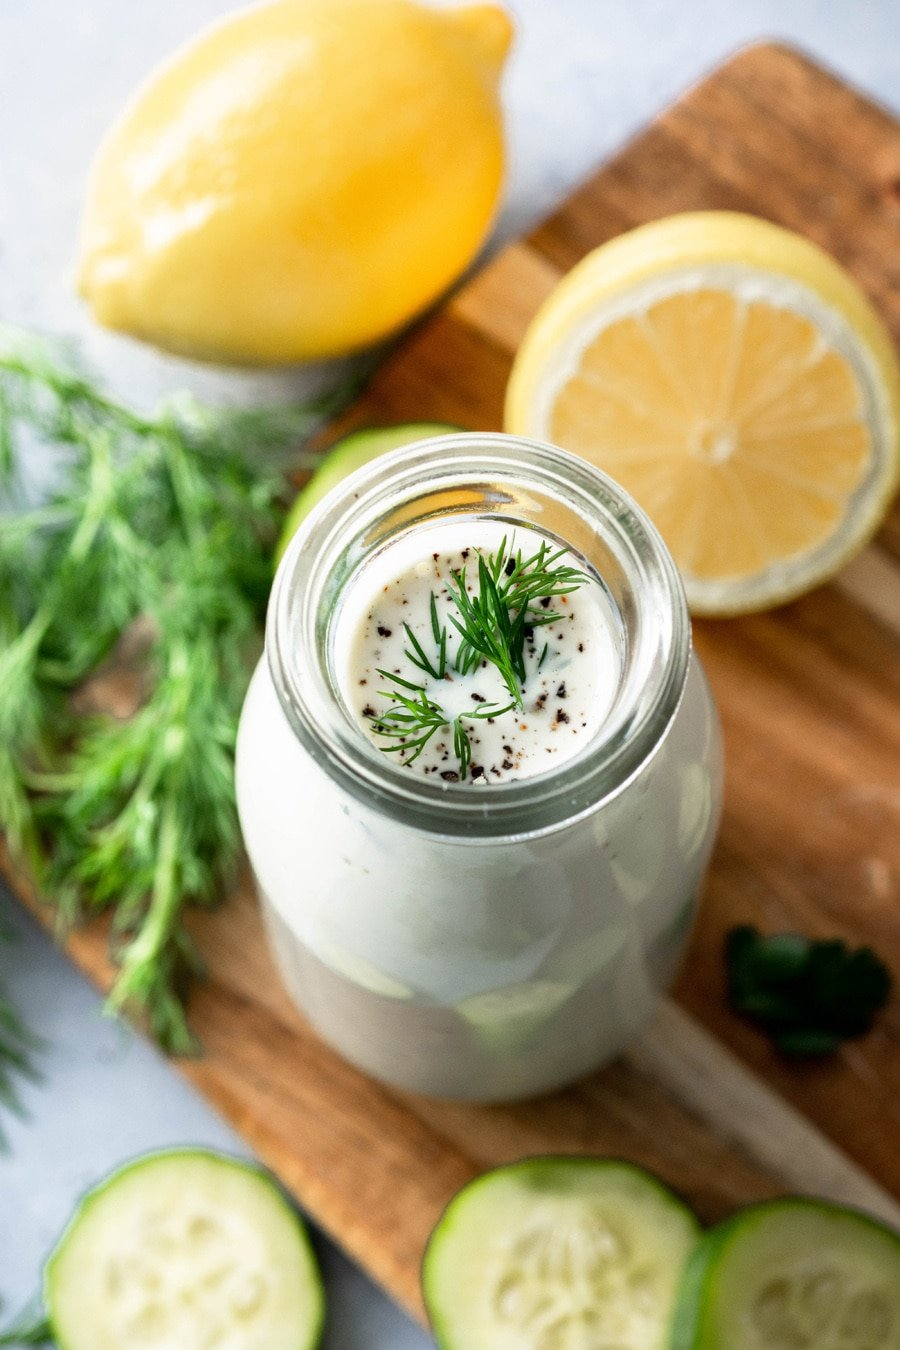 45 degree angle view of a jar of homemade dairy free ranch with herbs and cucumbers on a wooden board